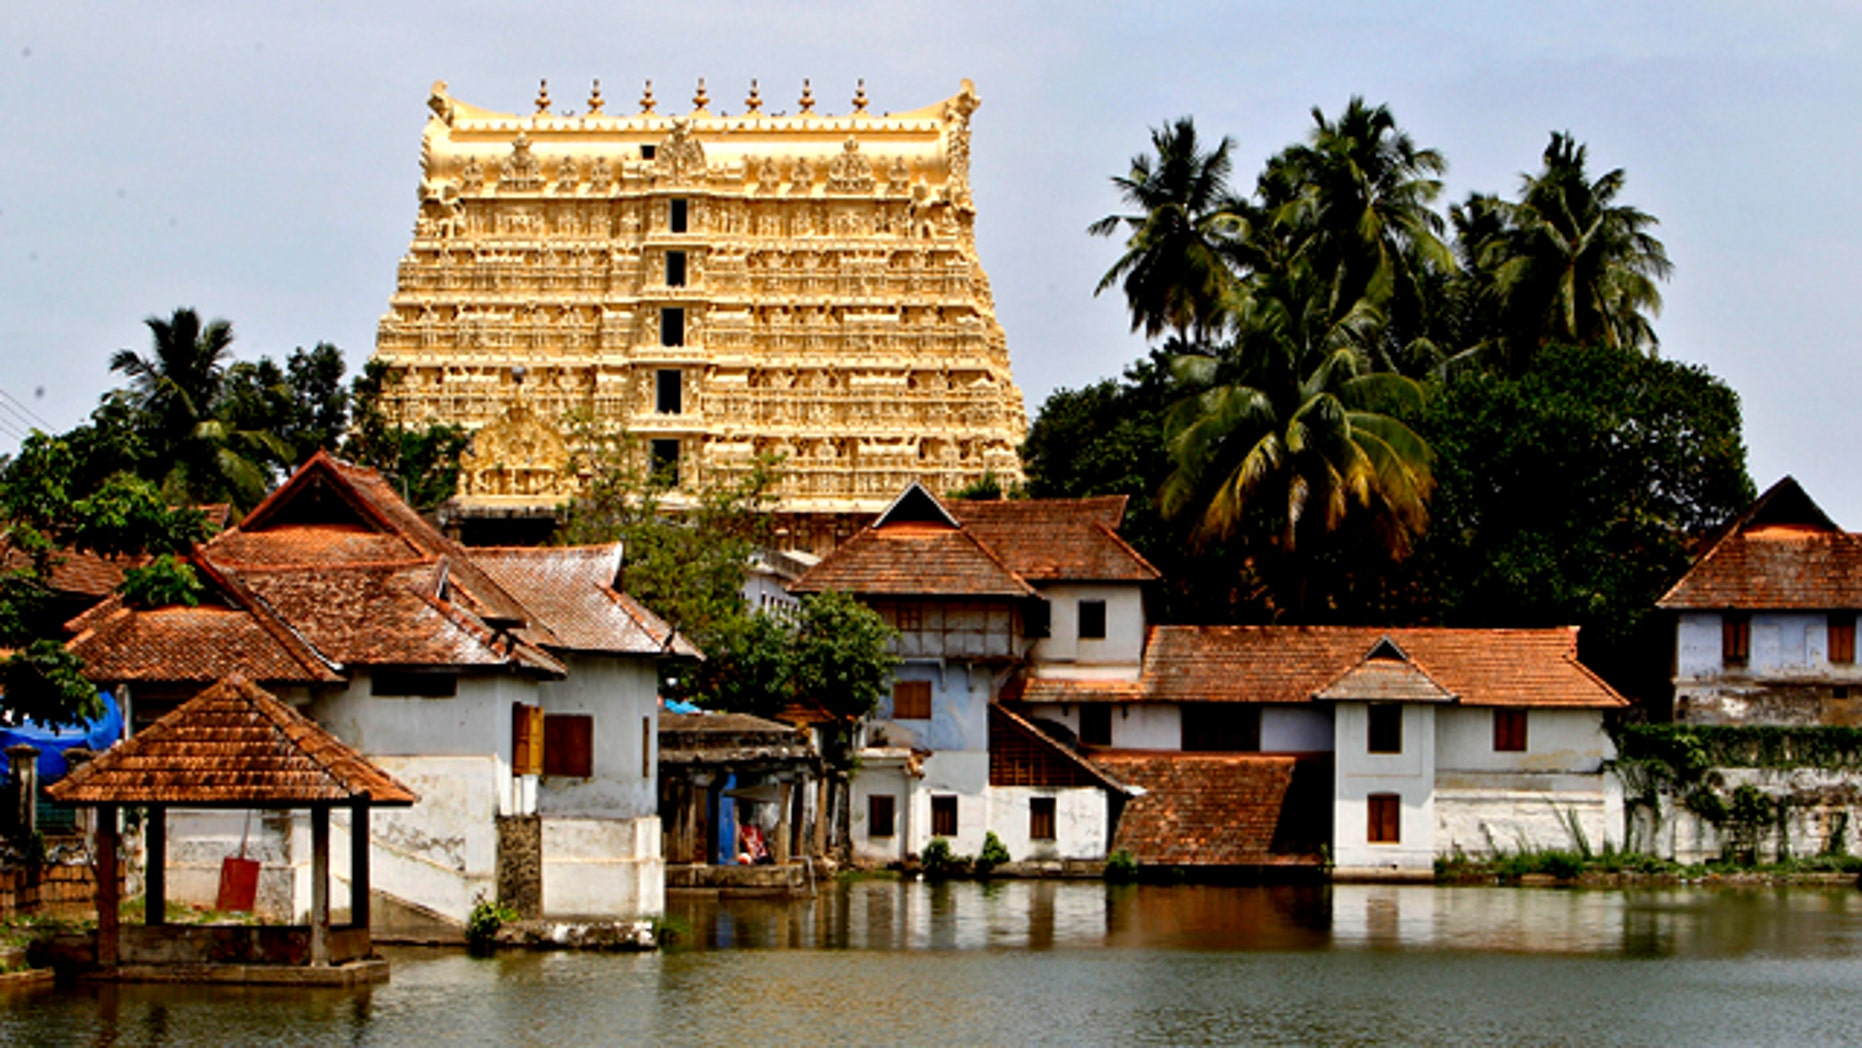 July 5, 2011: A vast treasure trove revealed in recent days has instantly turned the 16th-century Sree Padmanabhaswamy Temple into one of the wealthiest religious institutions in India.